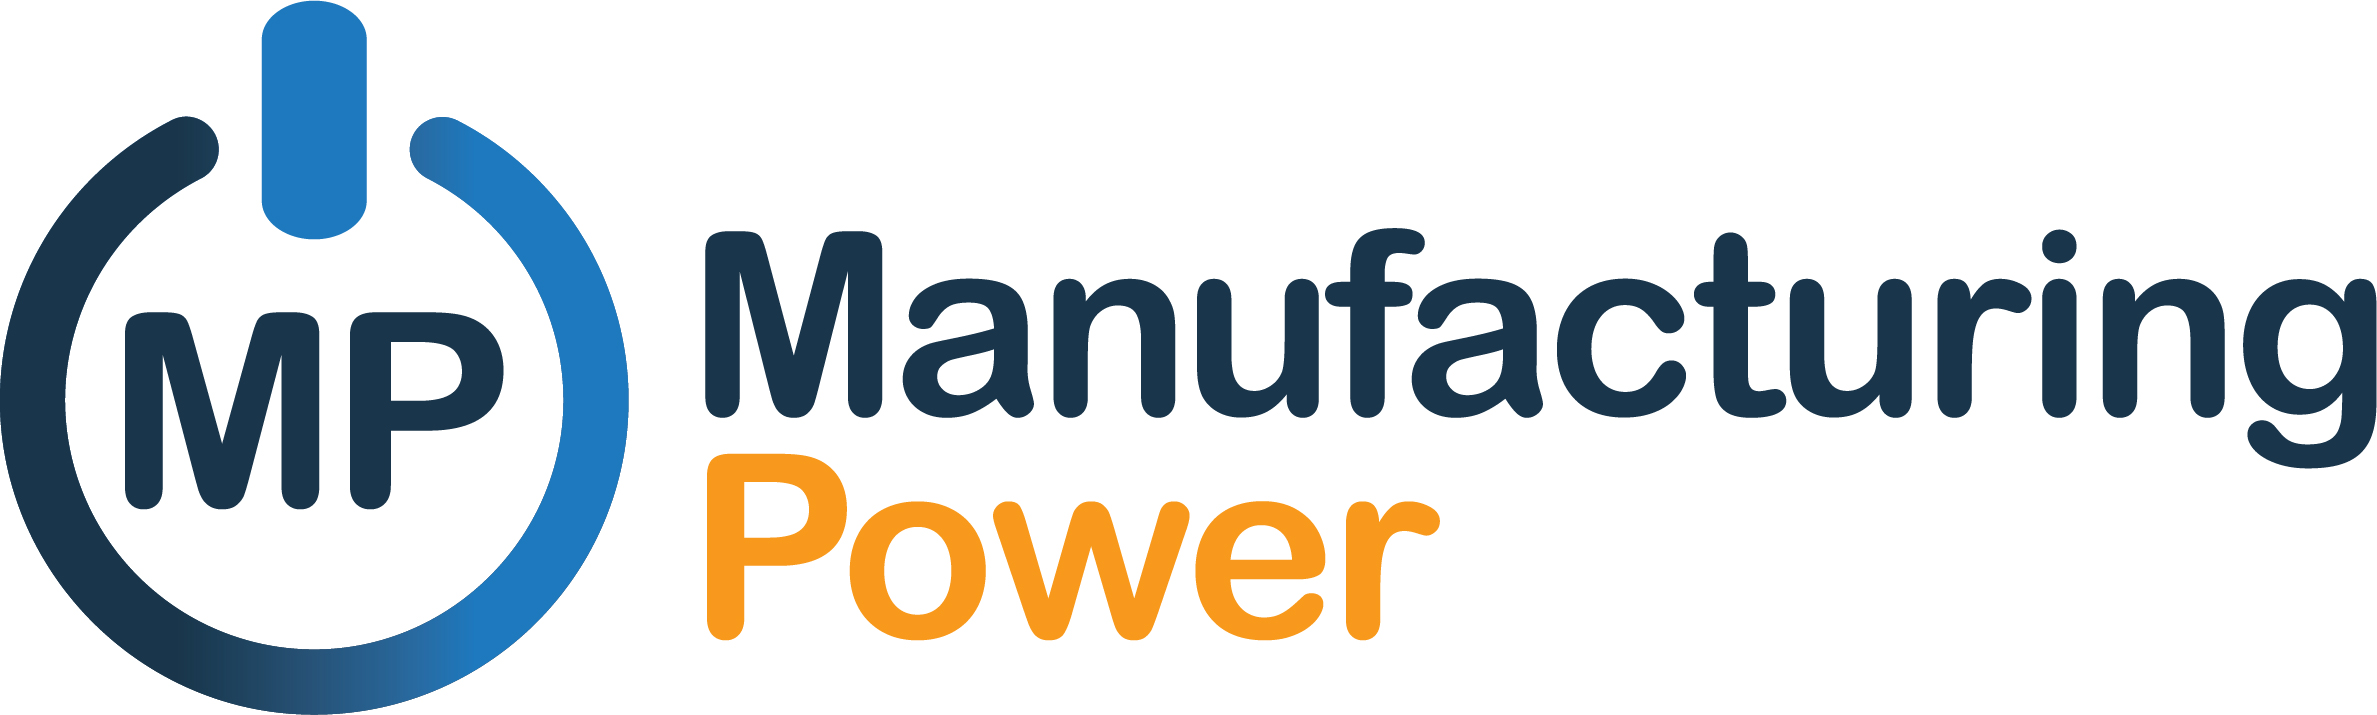 Competitive Pricing Knowledge Proves Powerful with ManufacturingPower Technologies